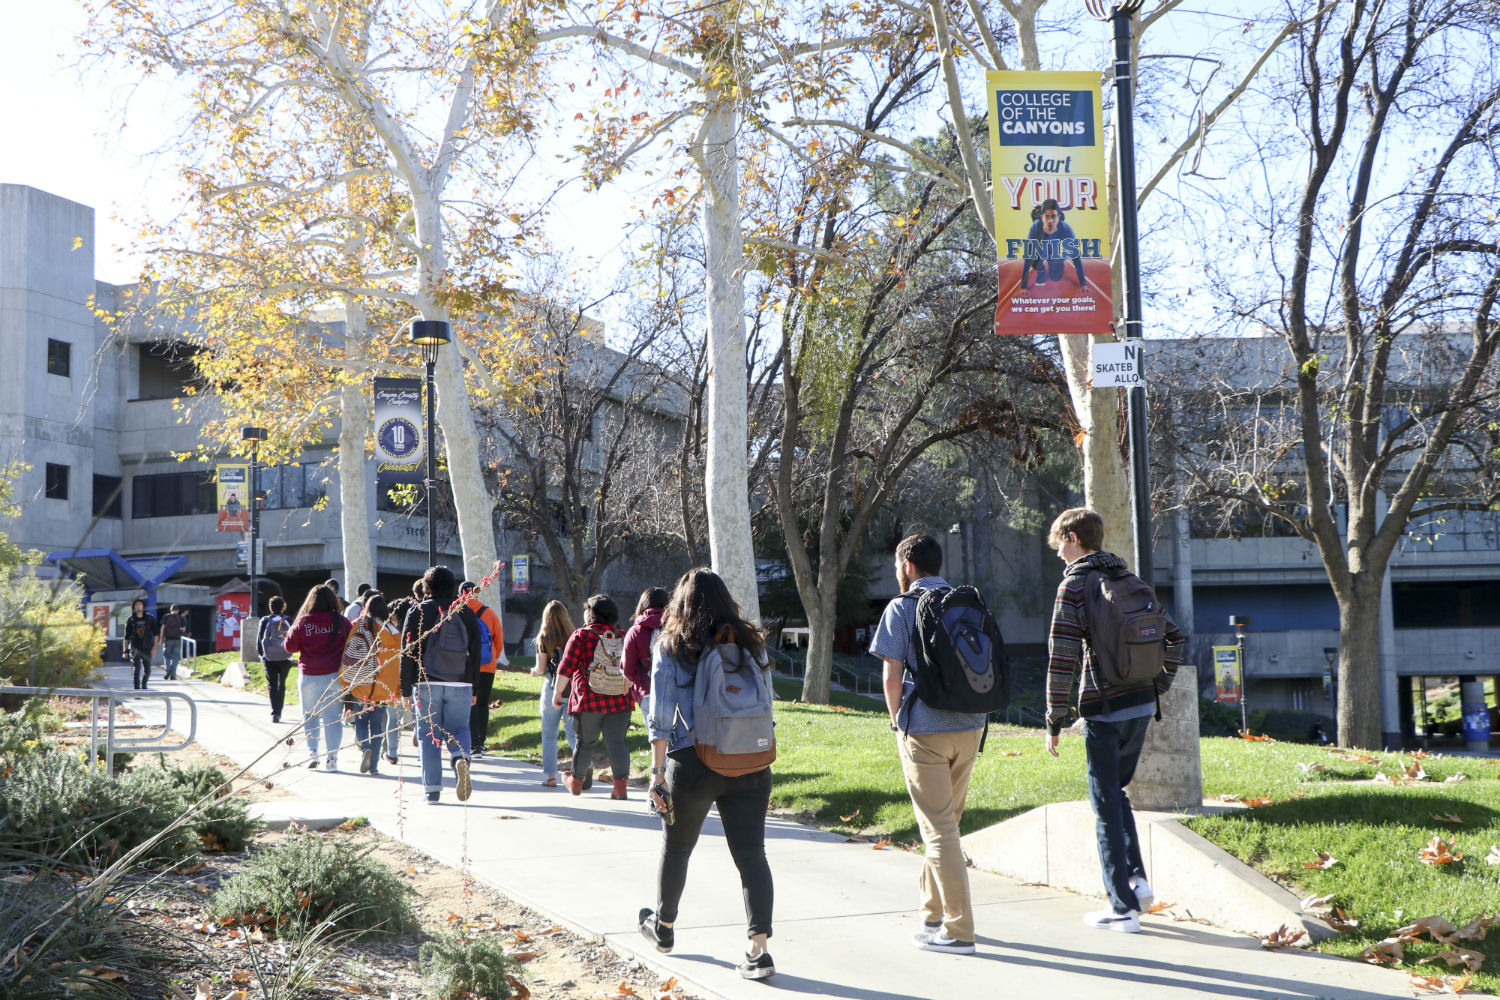 Scv News | Coc Adds Short Term Classes To Spring 2019 With Regard To When Does Spring Semester Start For Laverne University In College Of The Canyons